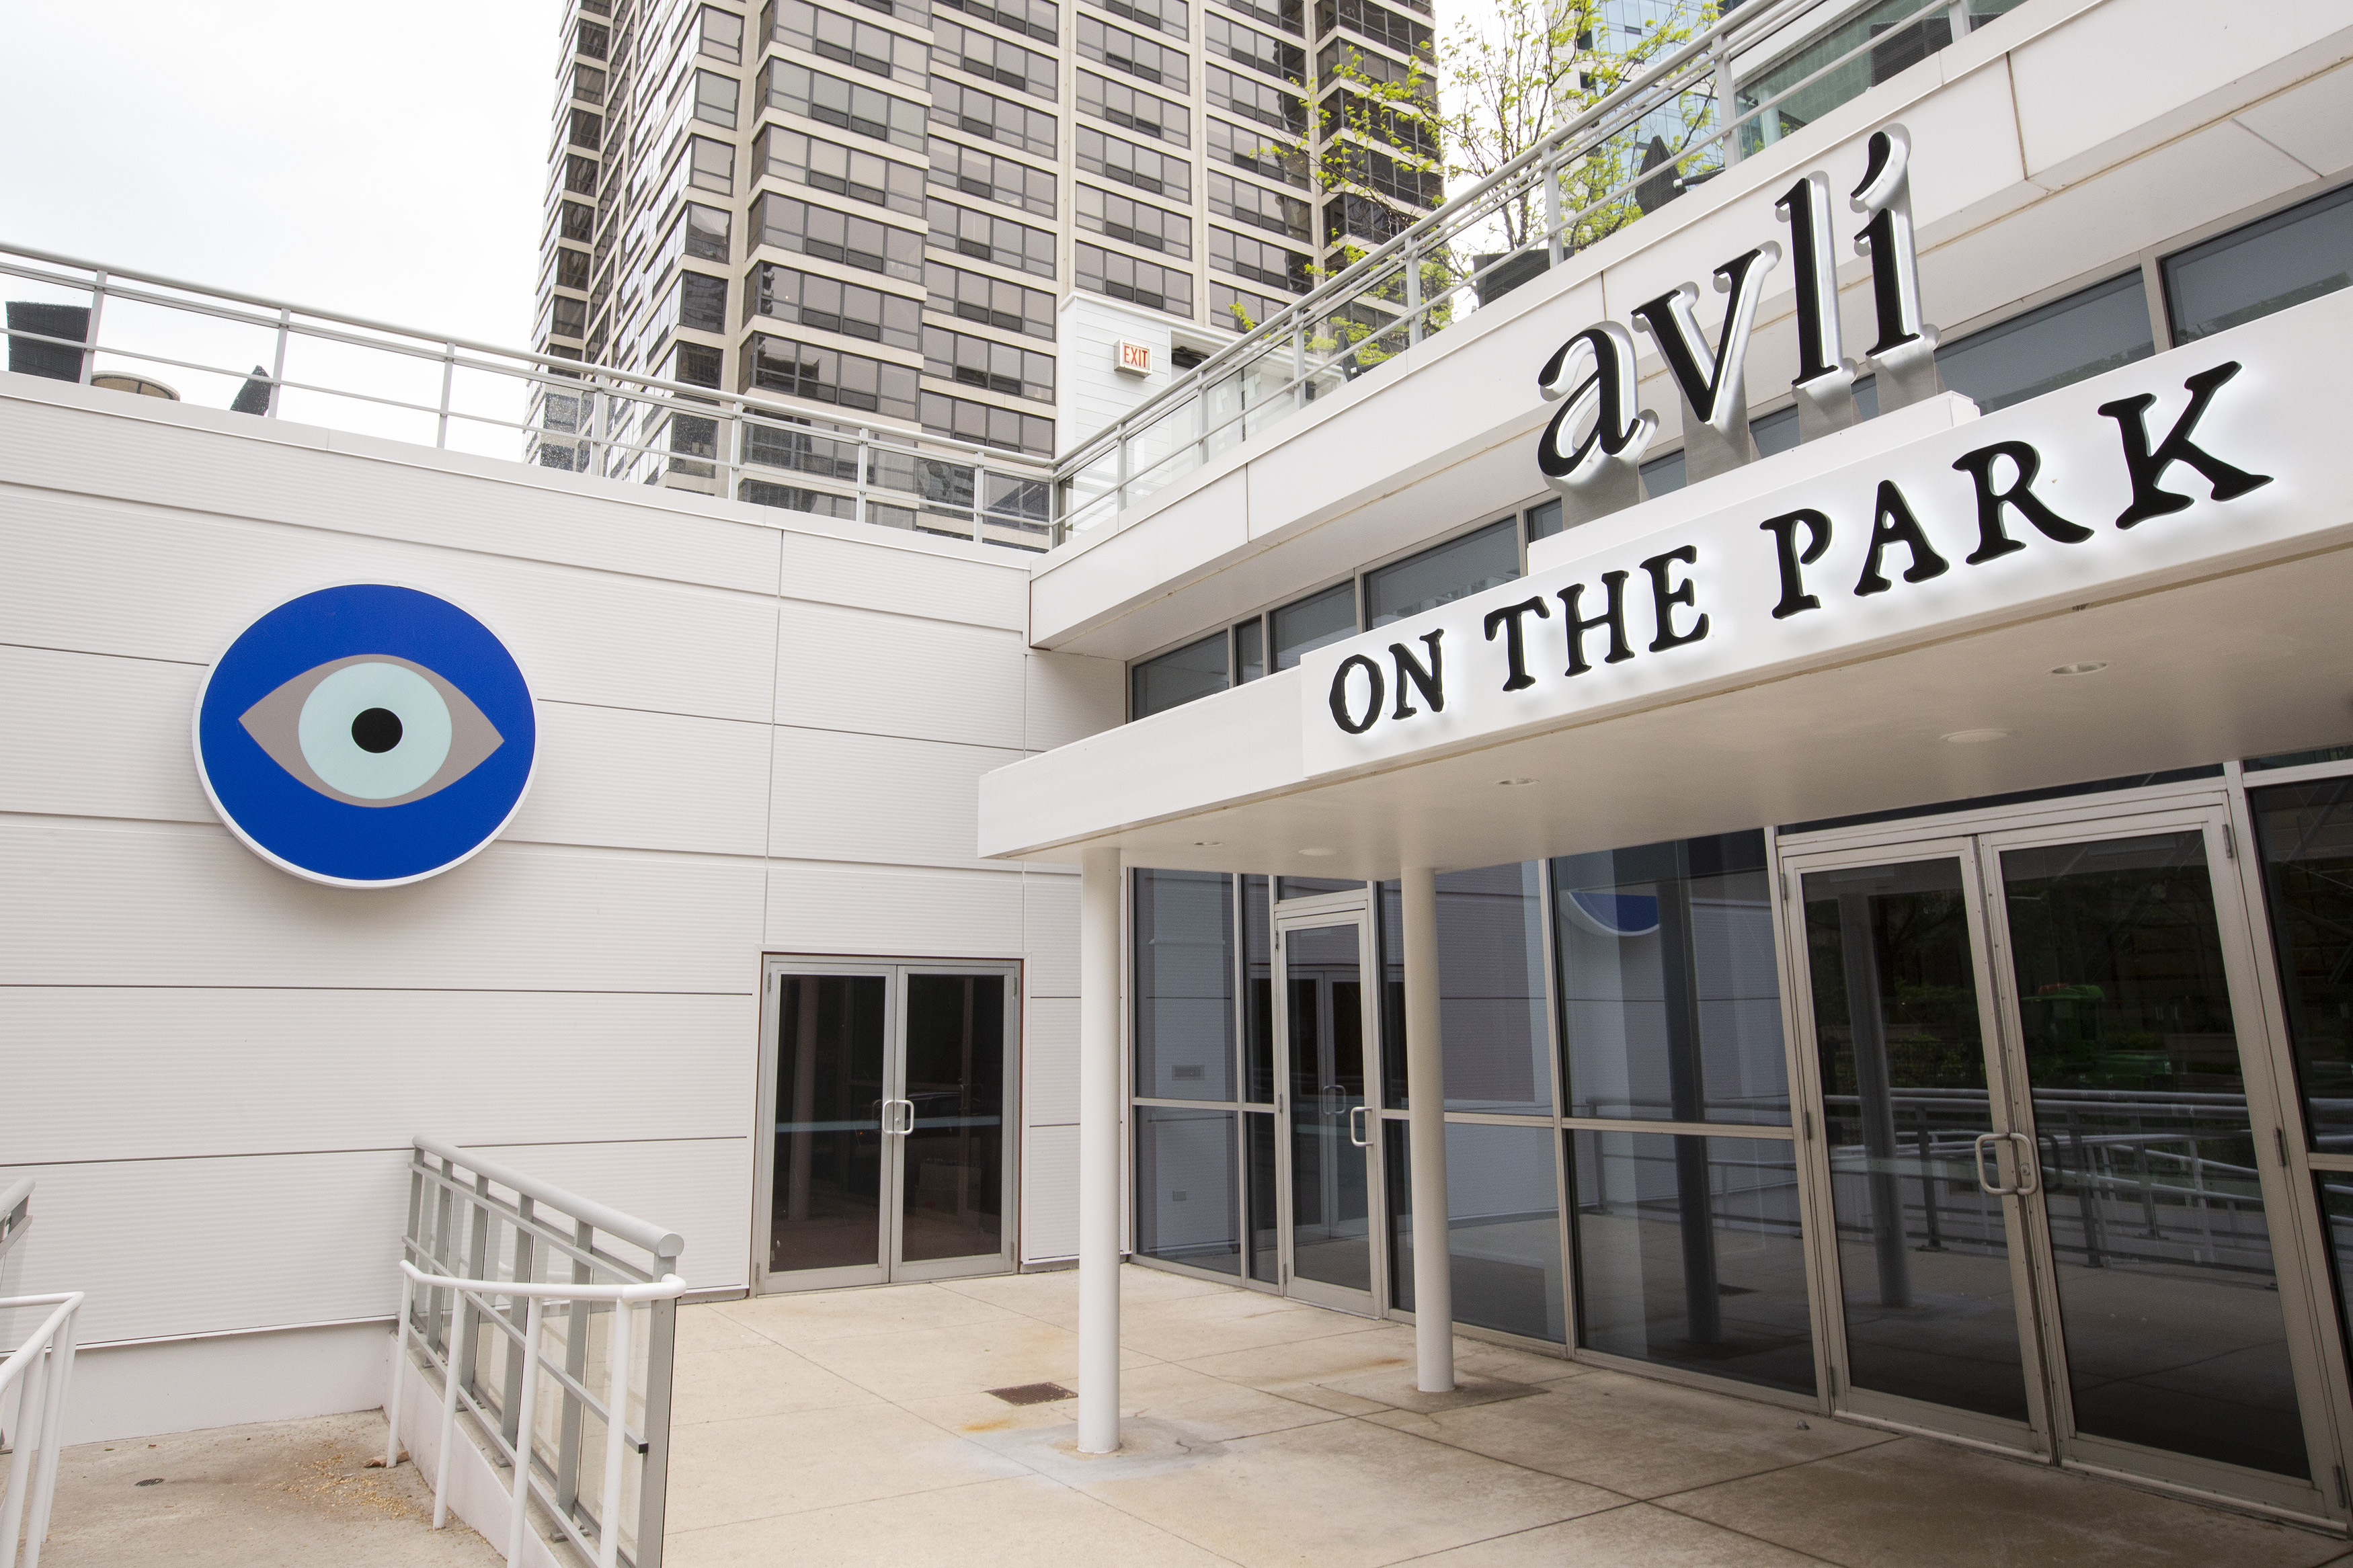 """A white restaurant entrance with a sign that reads """"Avli on the Park"""" and a large blue eye symbol."""